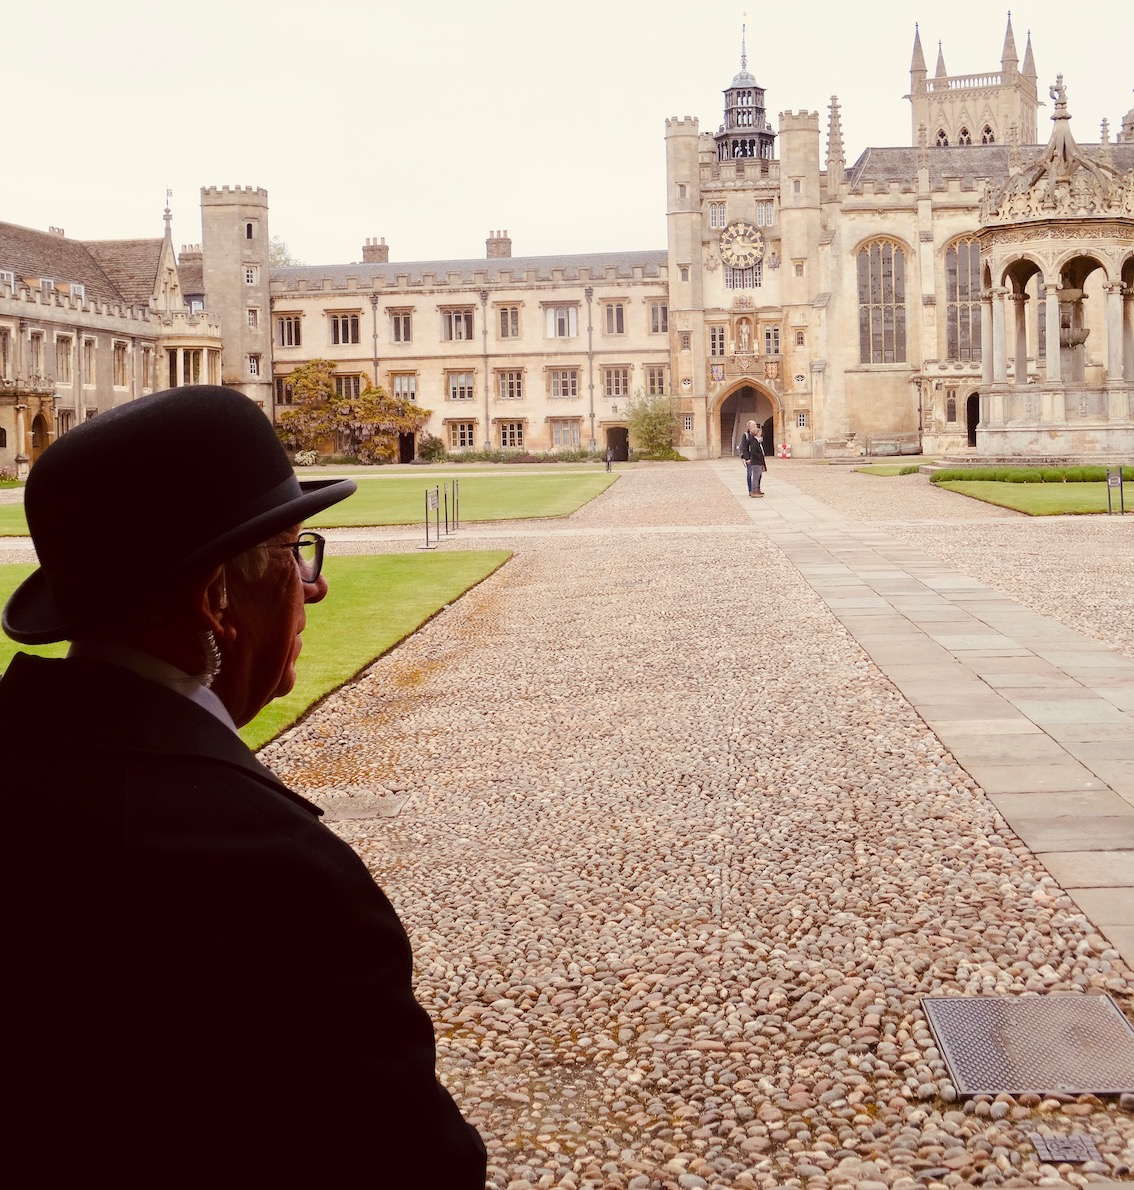 Trinity College Cambridge England.